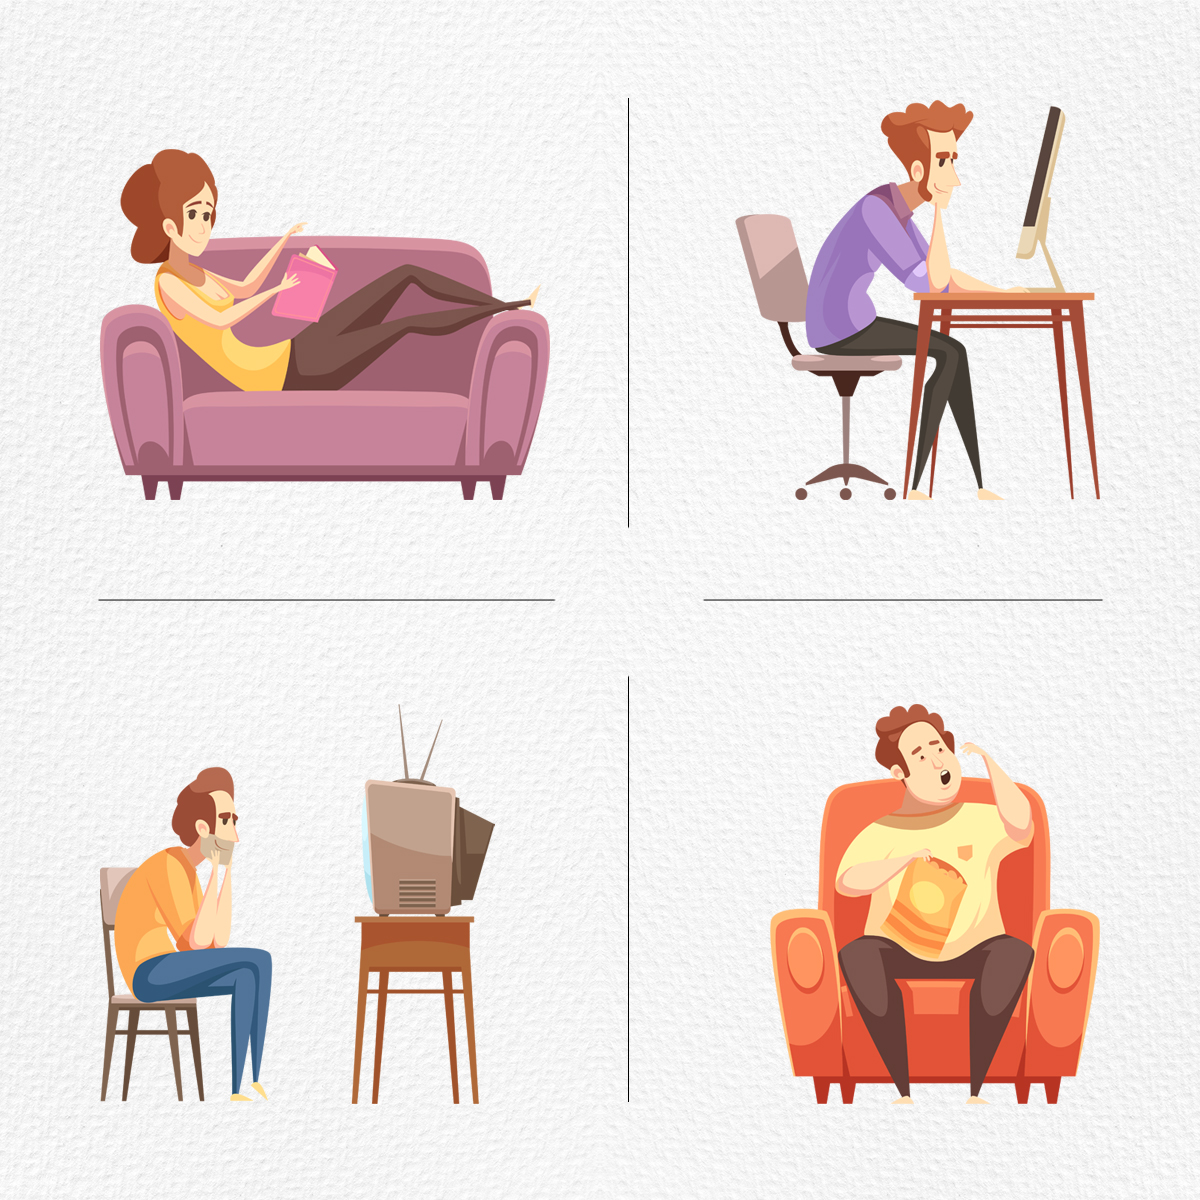 Sedentary-Lifestyle-in-blog-image